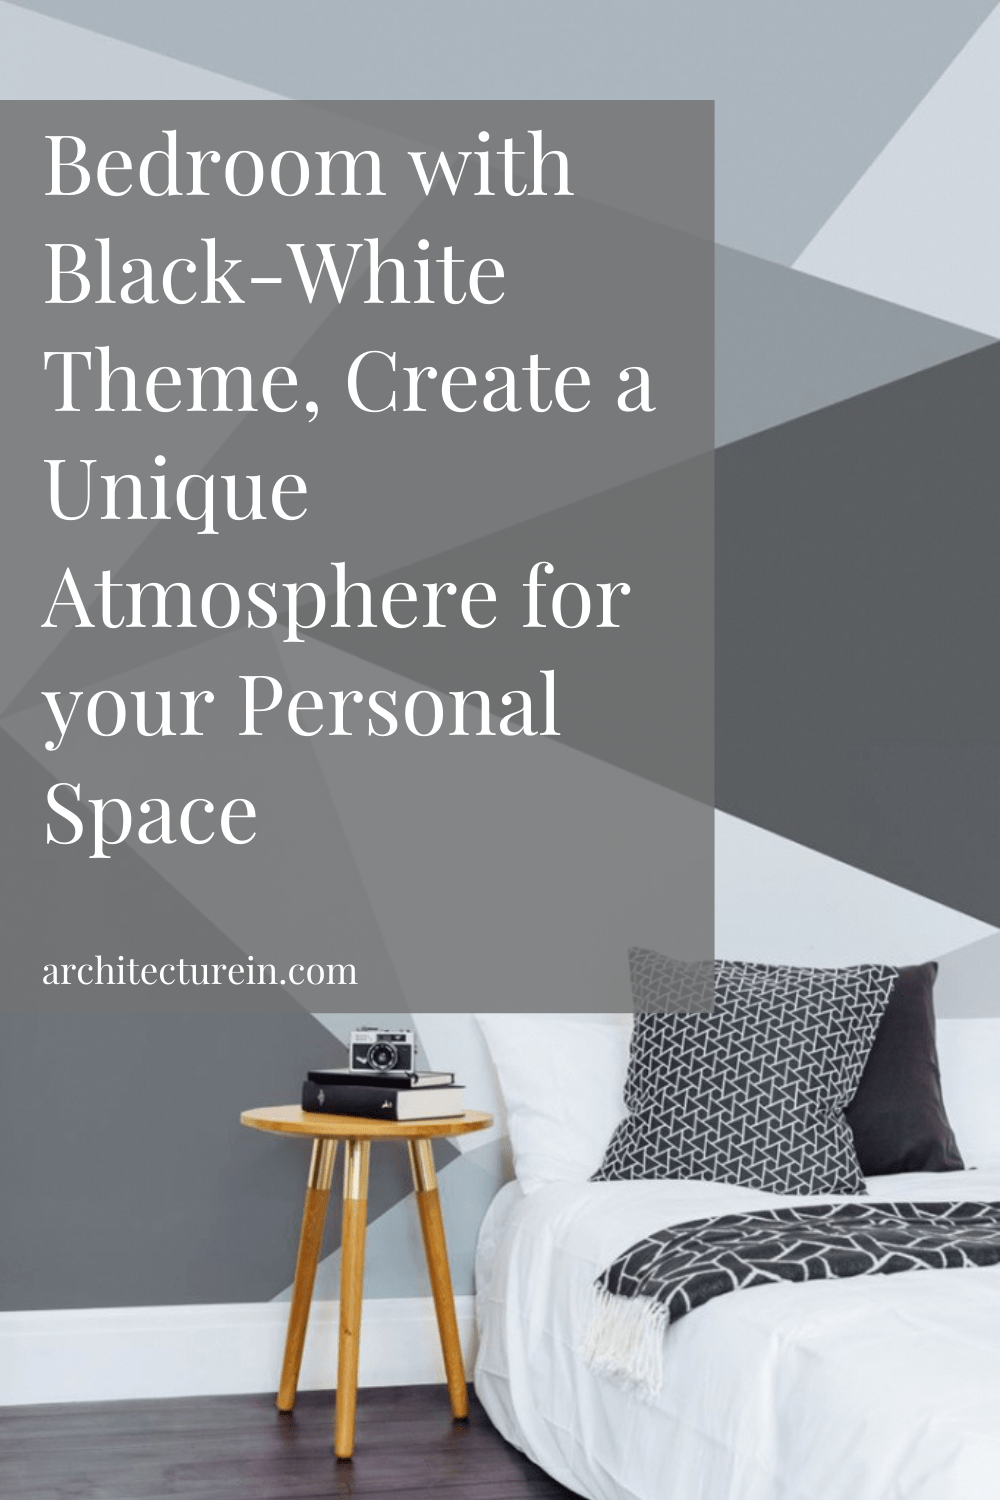 Black Touch on Wall for Bedroom with Black-White Theme